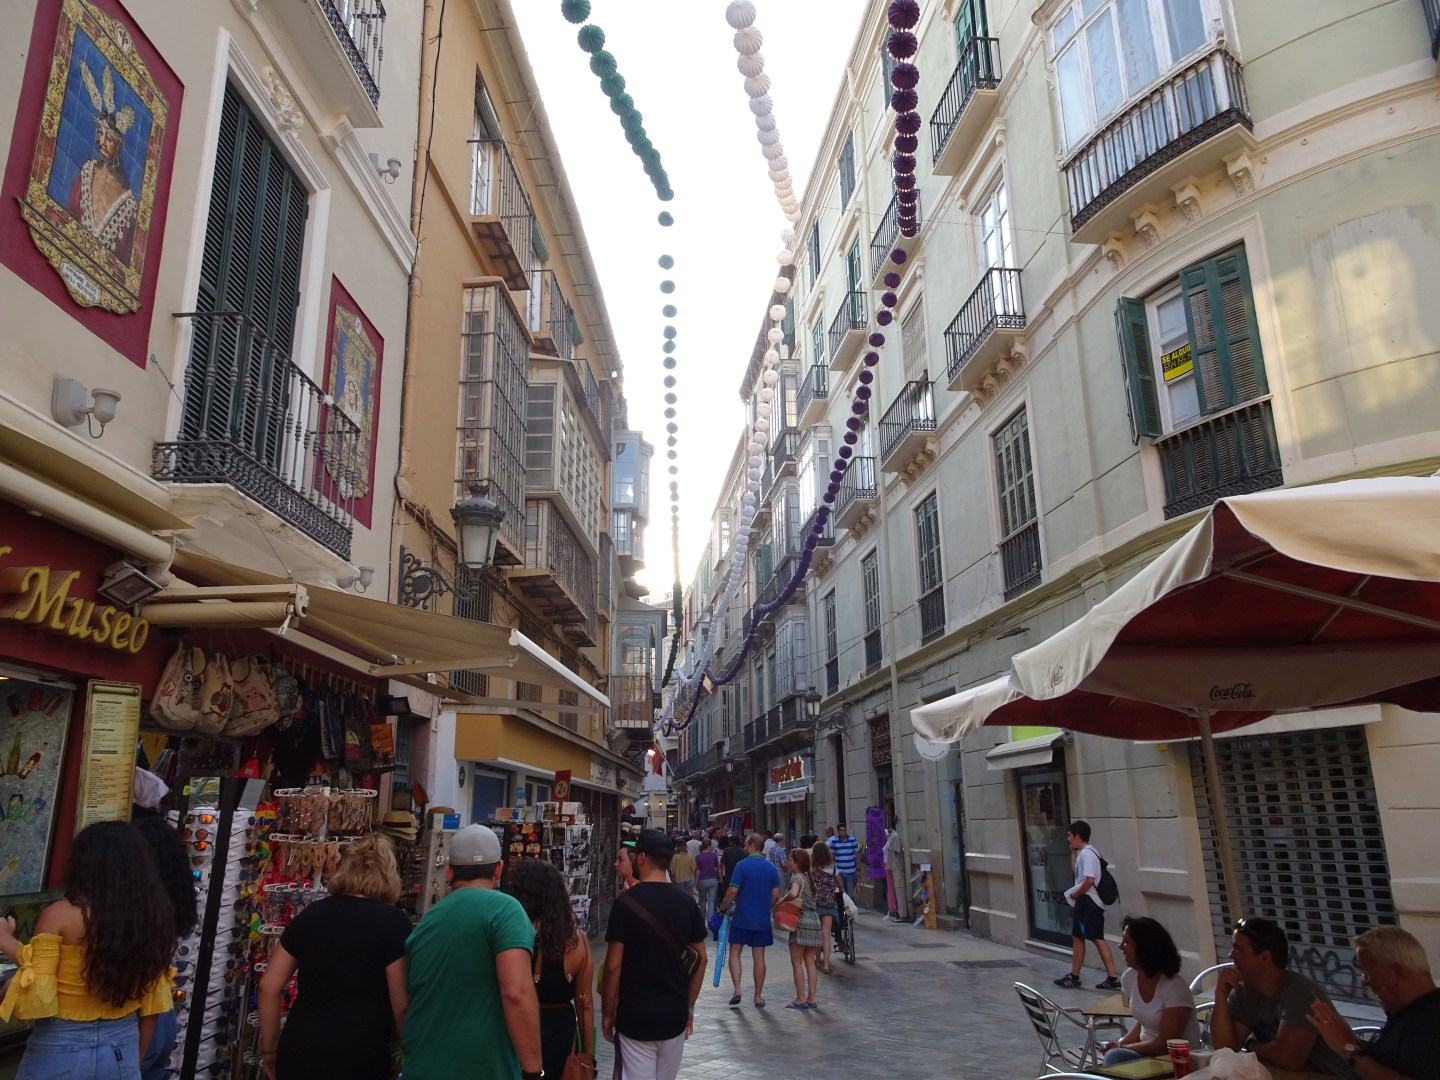 There areplenty of shopping opportunities in malaga